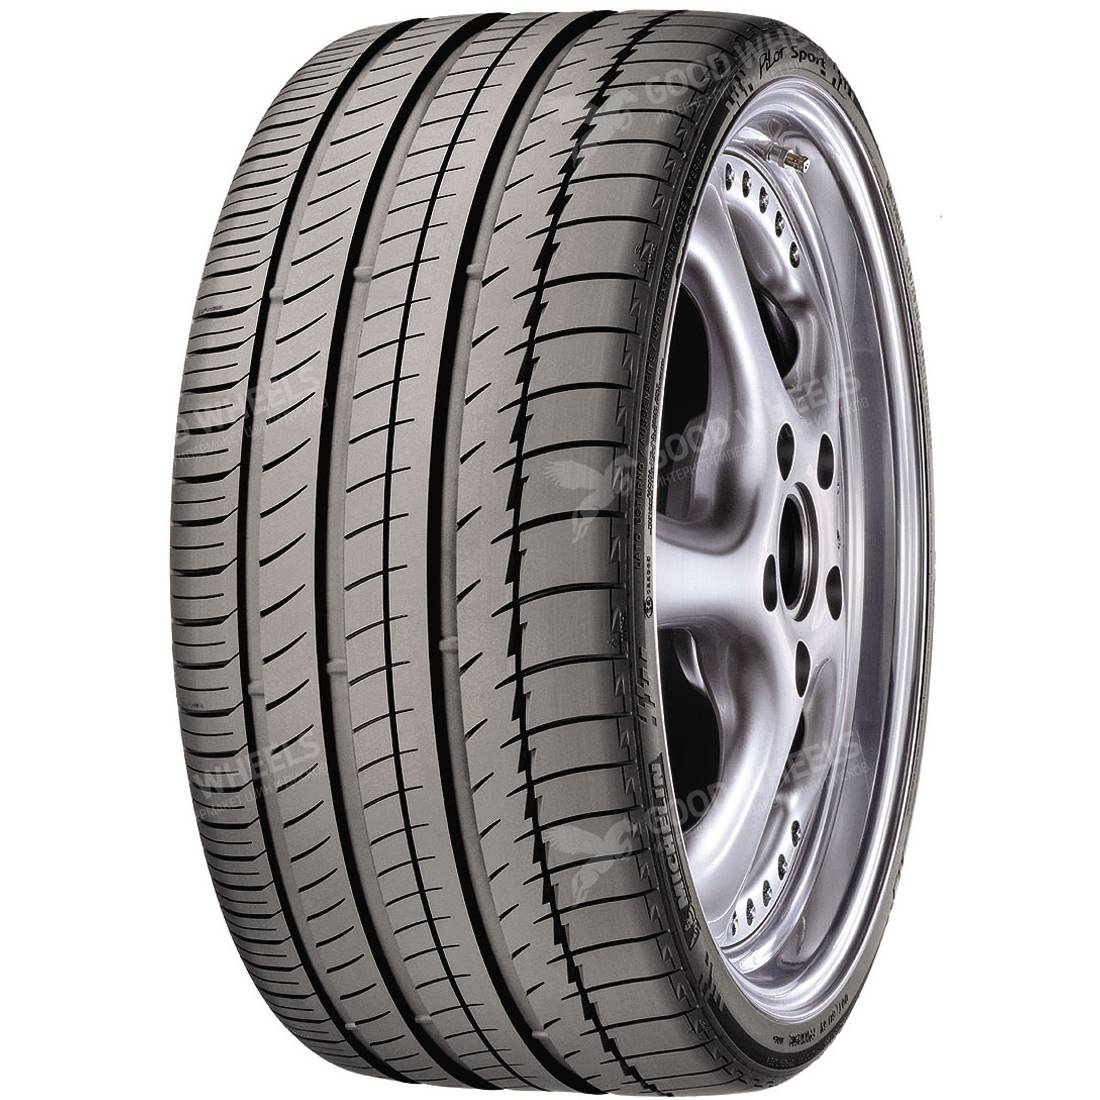 Michelin Pilot Sport 2 (PS2) 265/35 R21 101Y